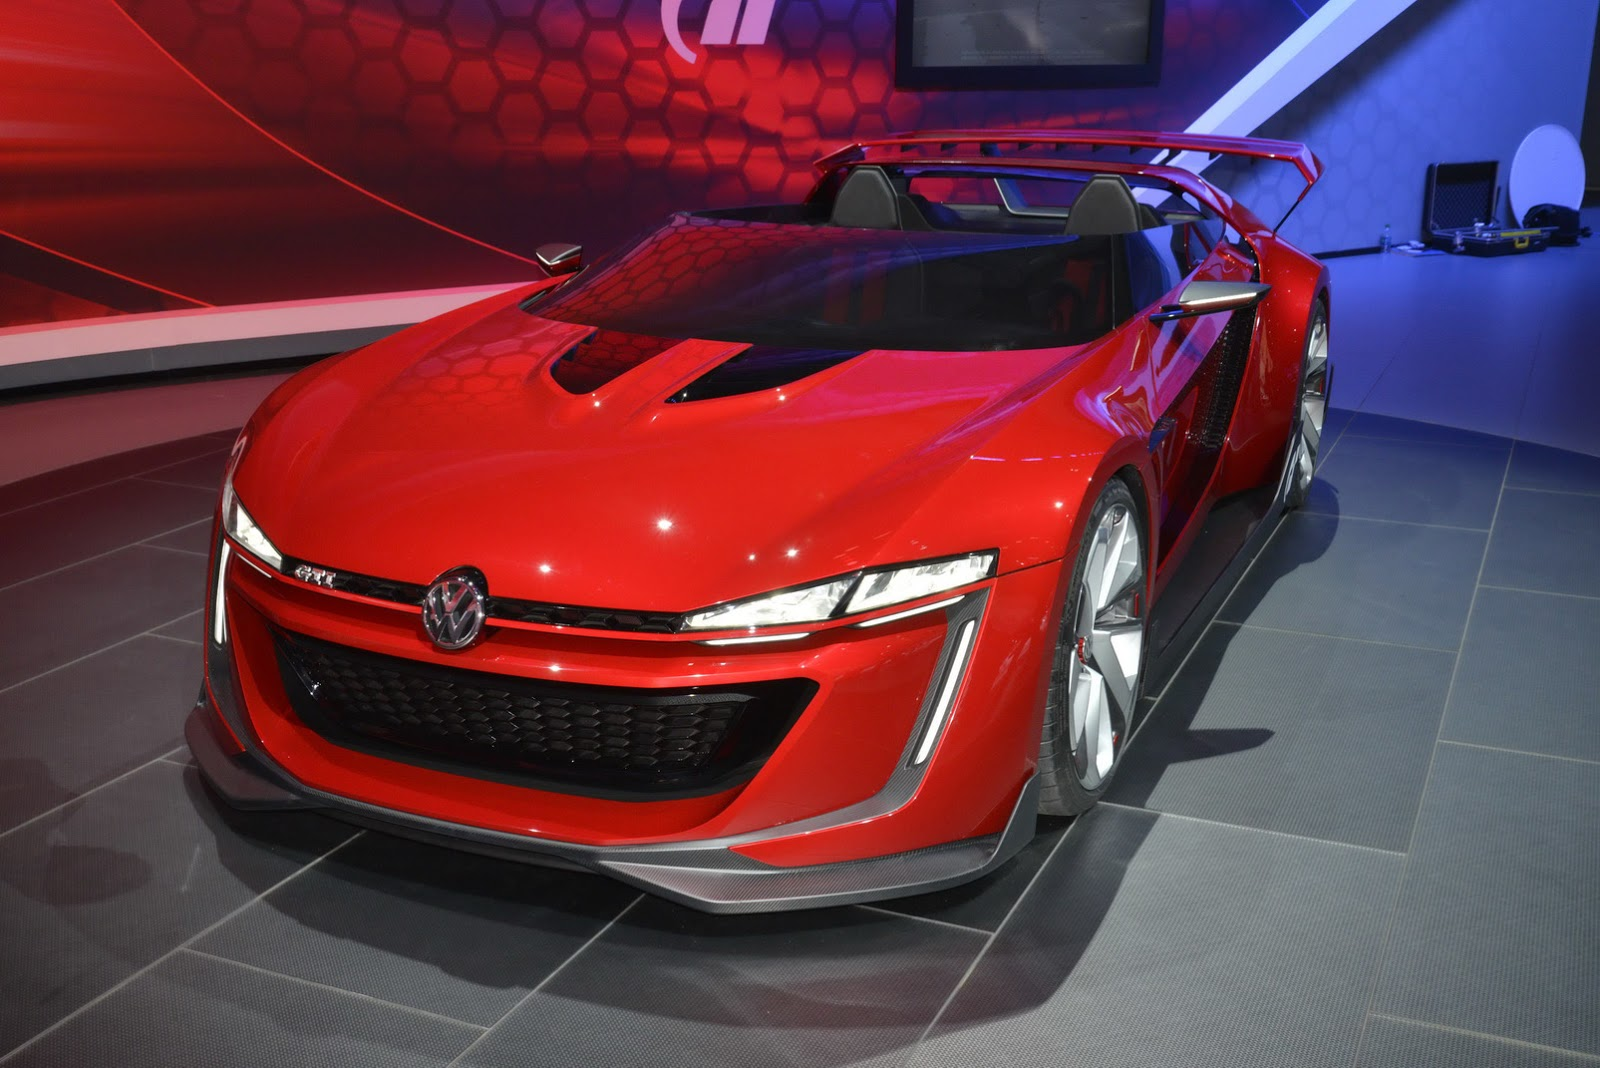 Vw 39 s gti roadster concept would make for an awesome scirocco